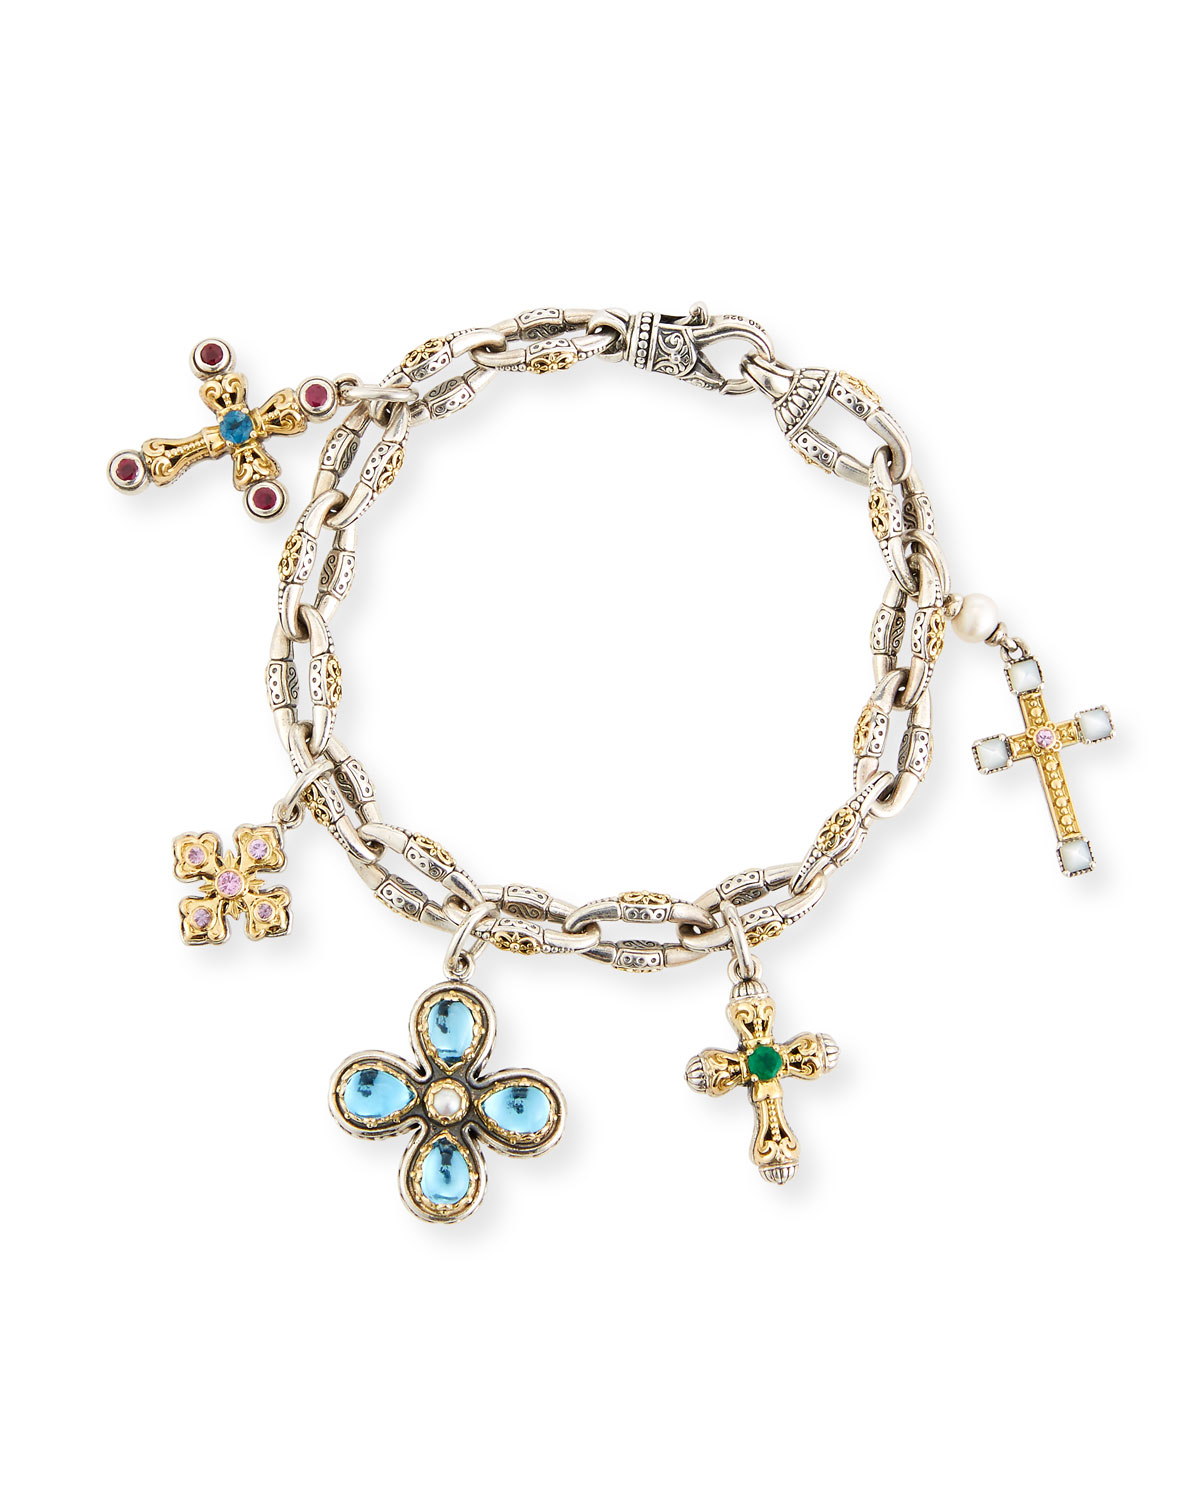 Cross Charm Bracelet With Blue Topaz Pearls